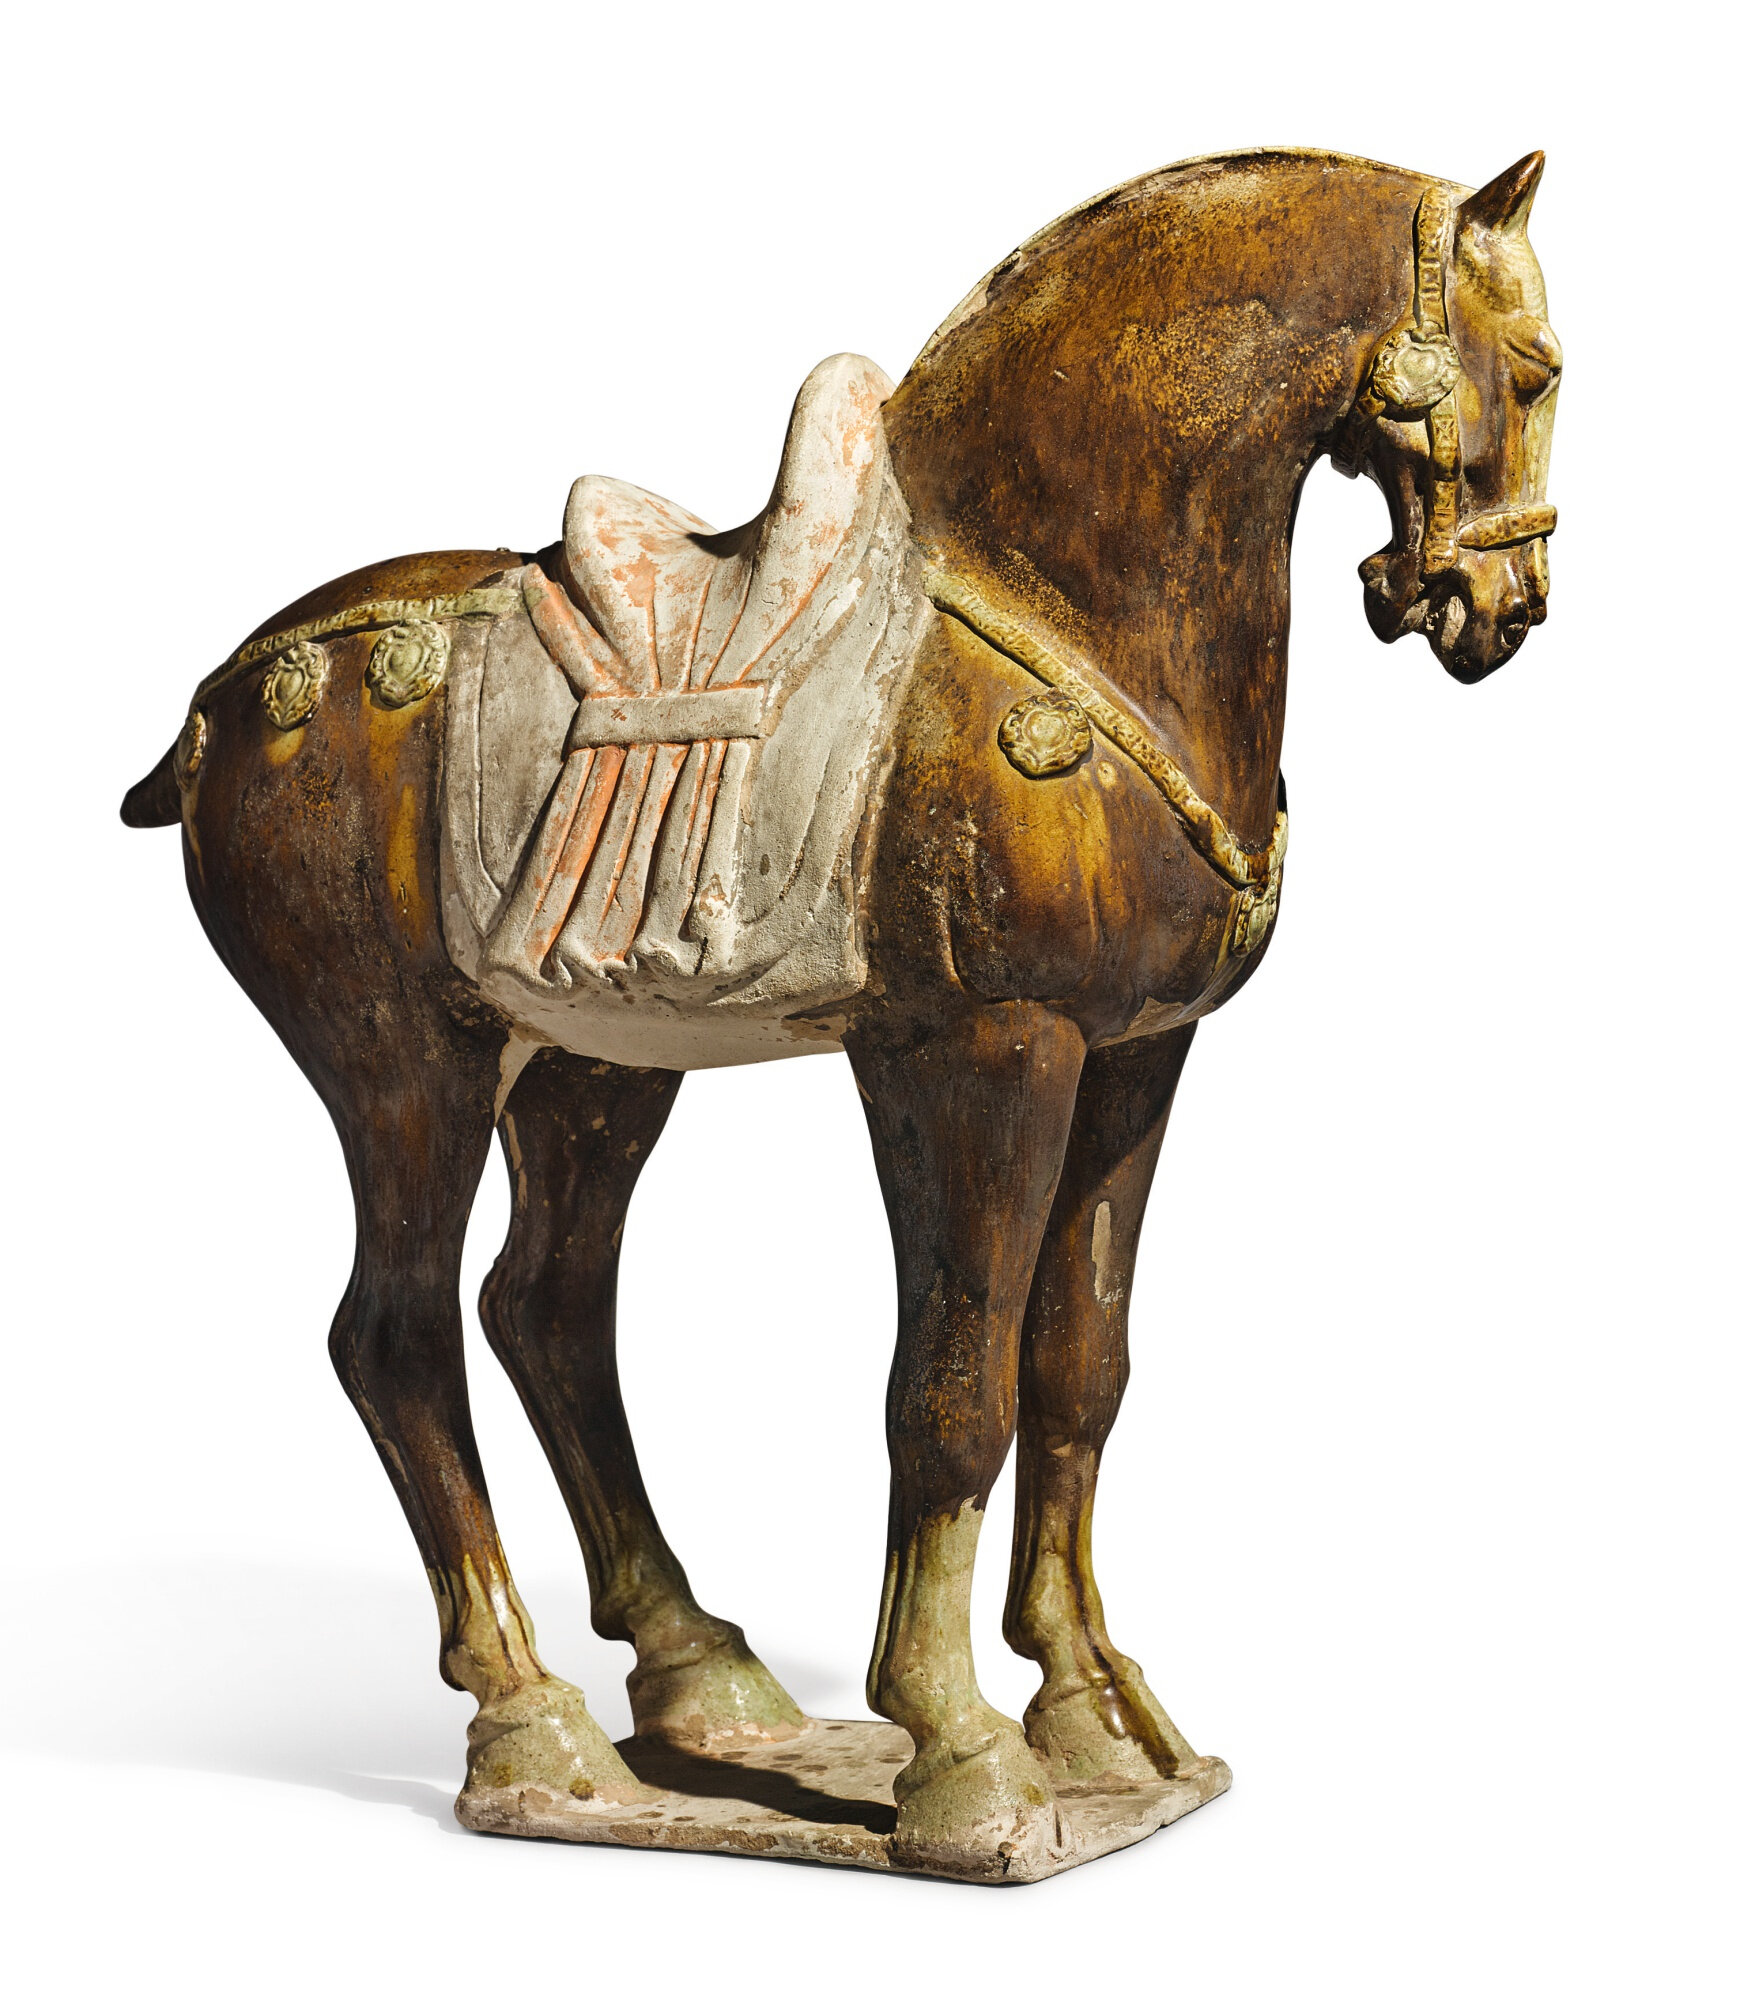 An amber-glazed pottery figure of a caparisoned horse, Tang dynasty (618-907)